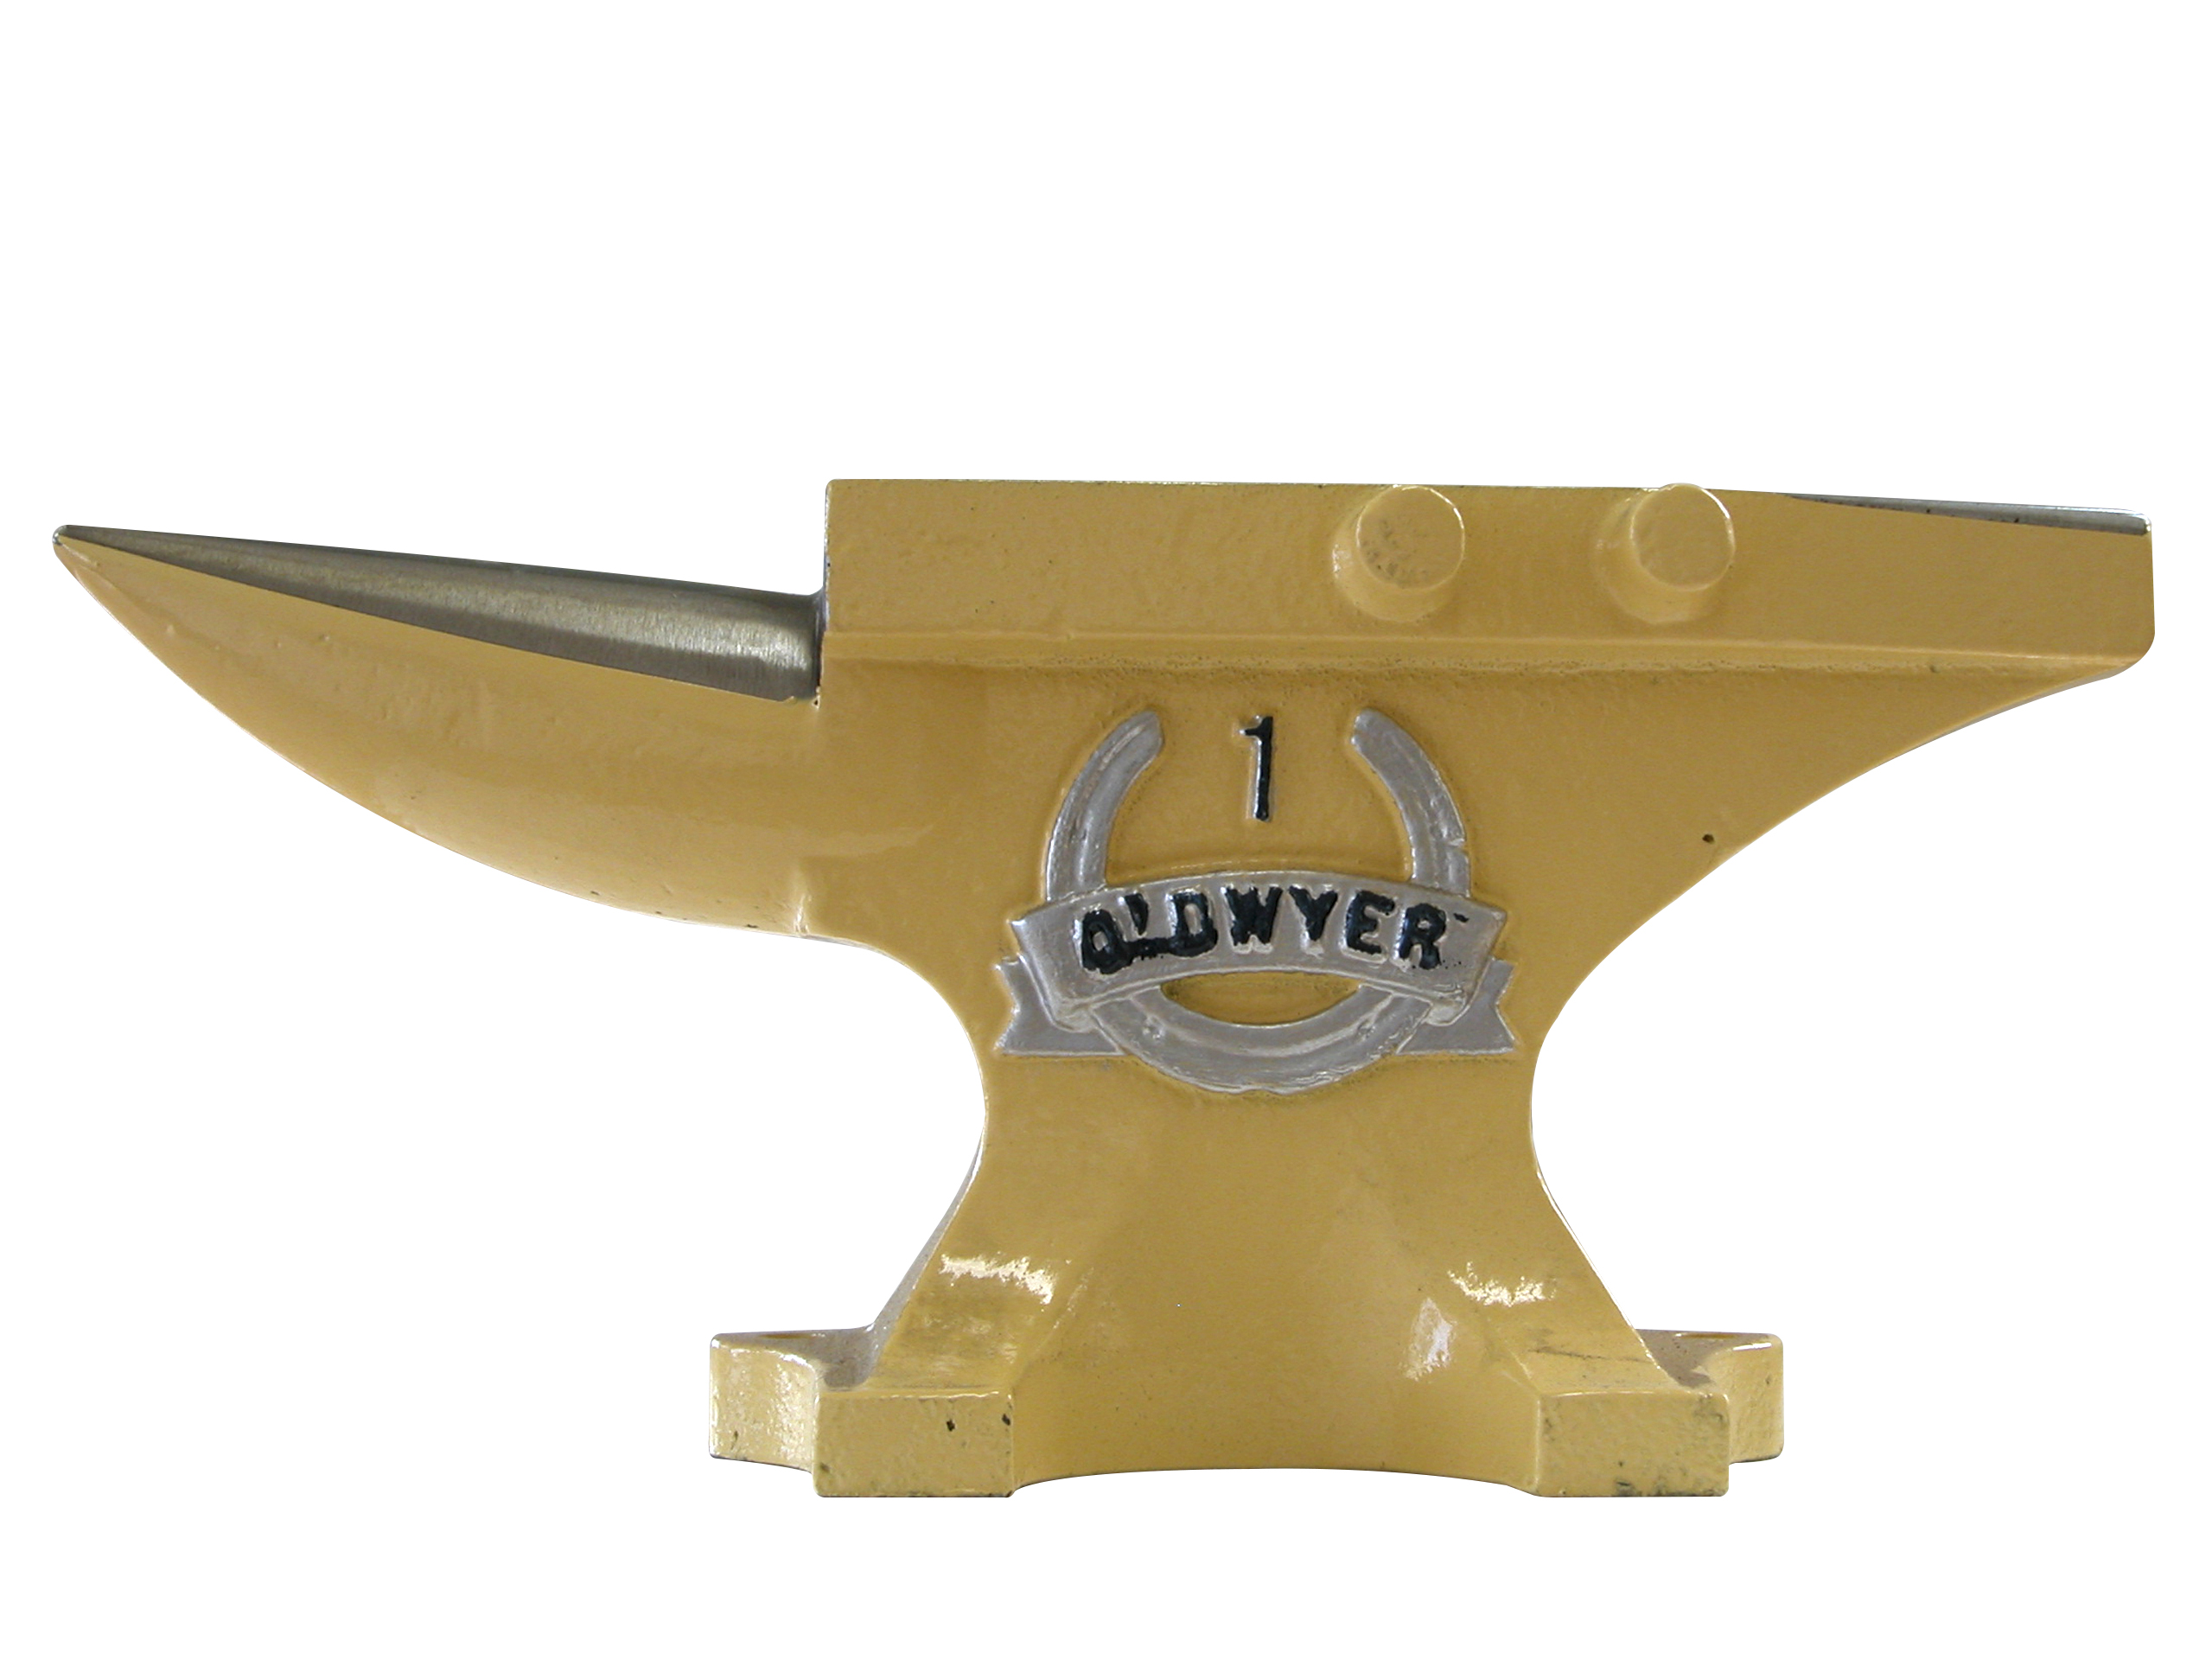 Odwyer Anvil